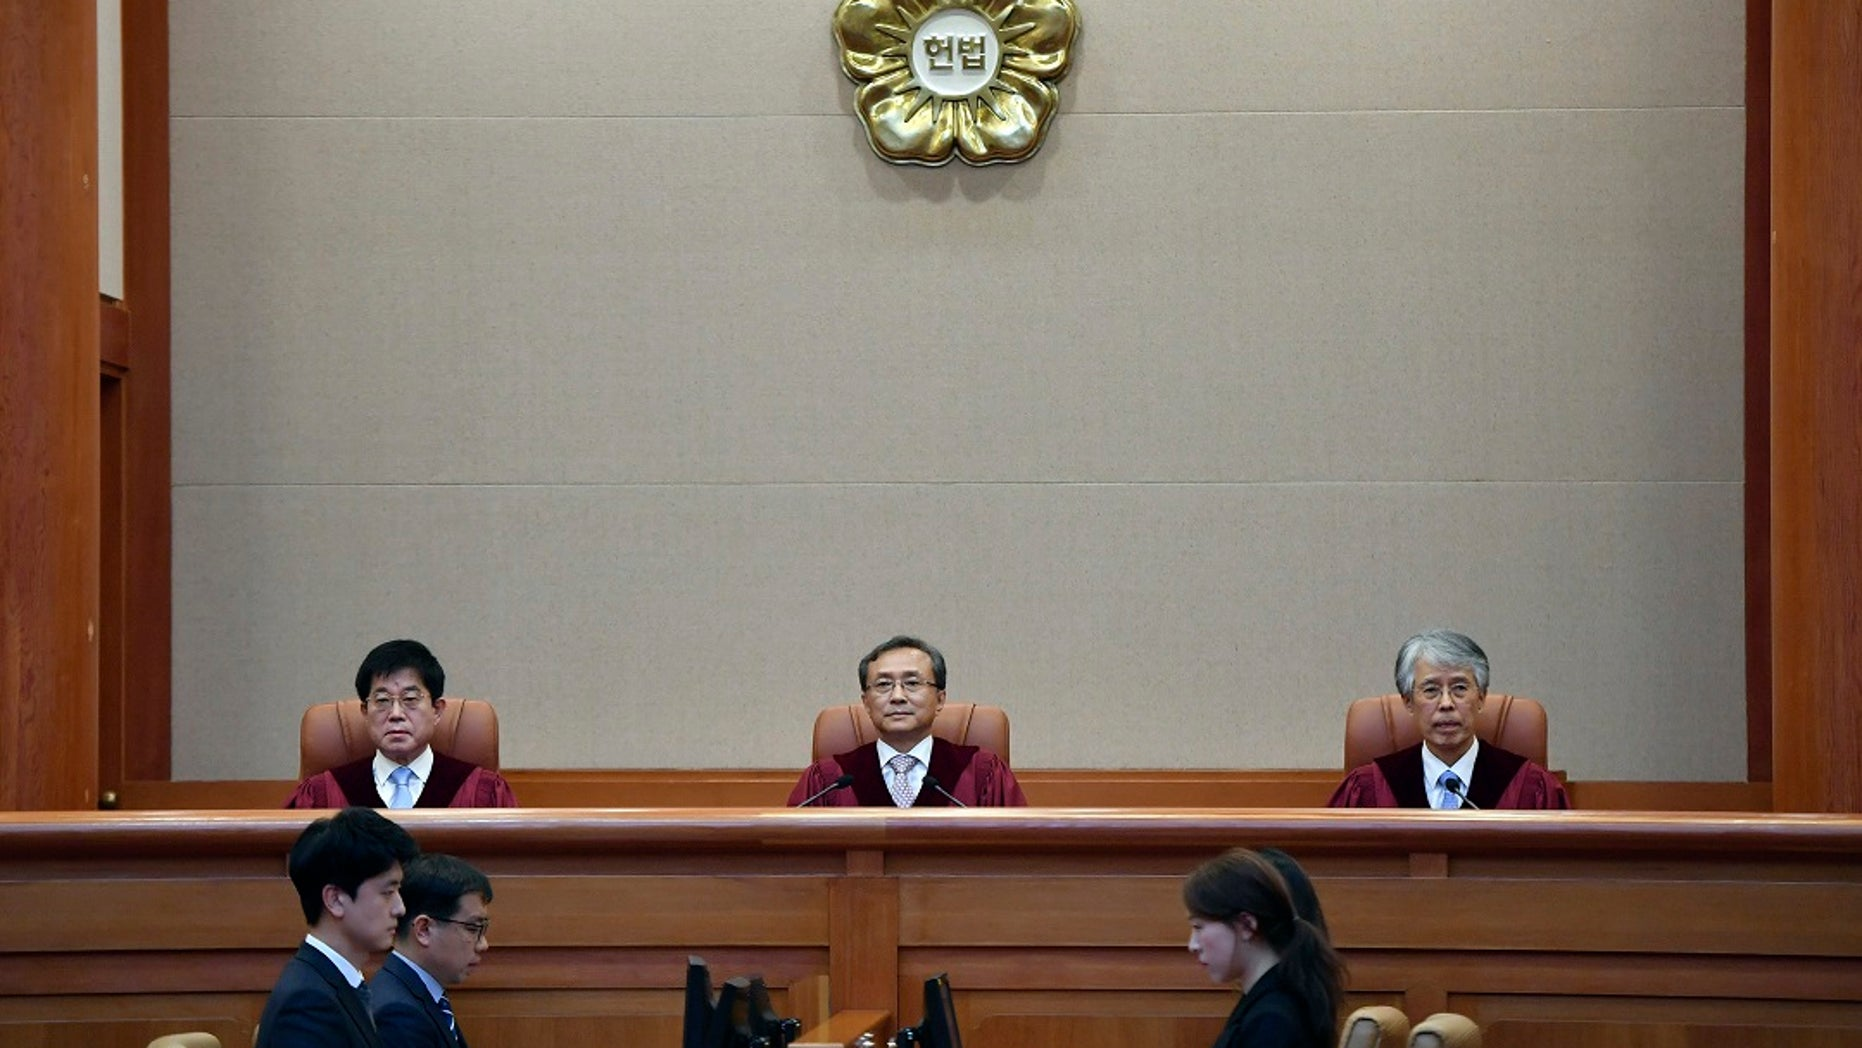 South Korea's Constitutional Court chief judge Yoo Nam-seok, center, and other judges sit for the ruling on decriminalization of abortion at the court in Seoul on Thursday. (Jung Yeon-je /Pool Photo via AP)